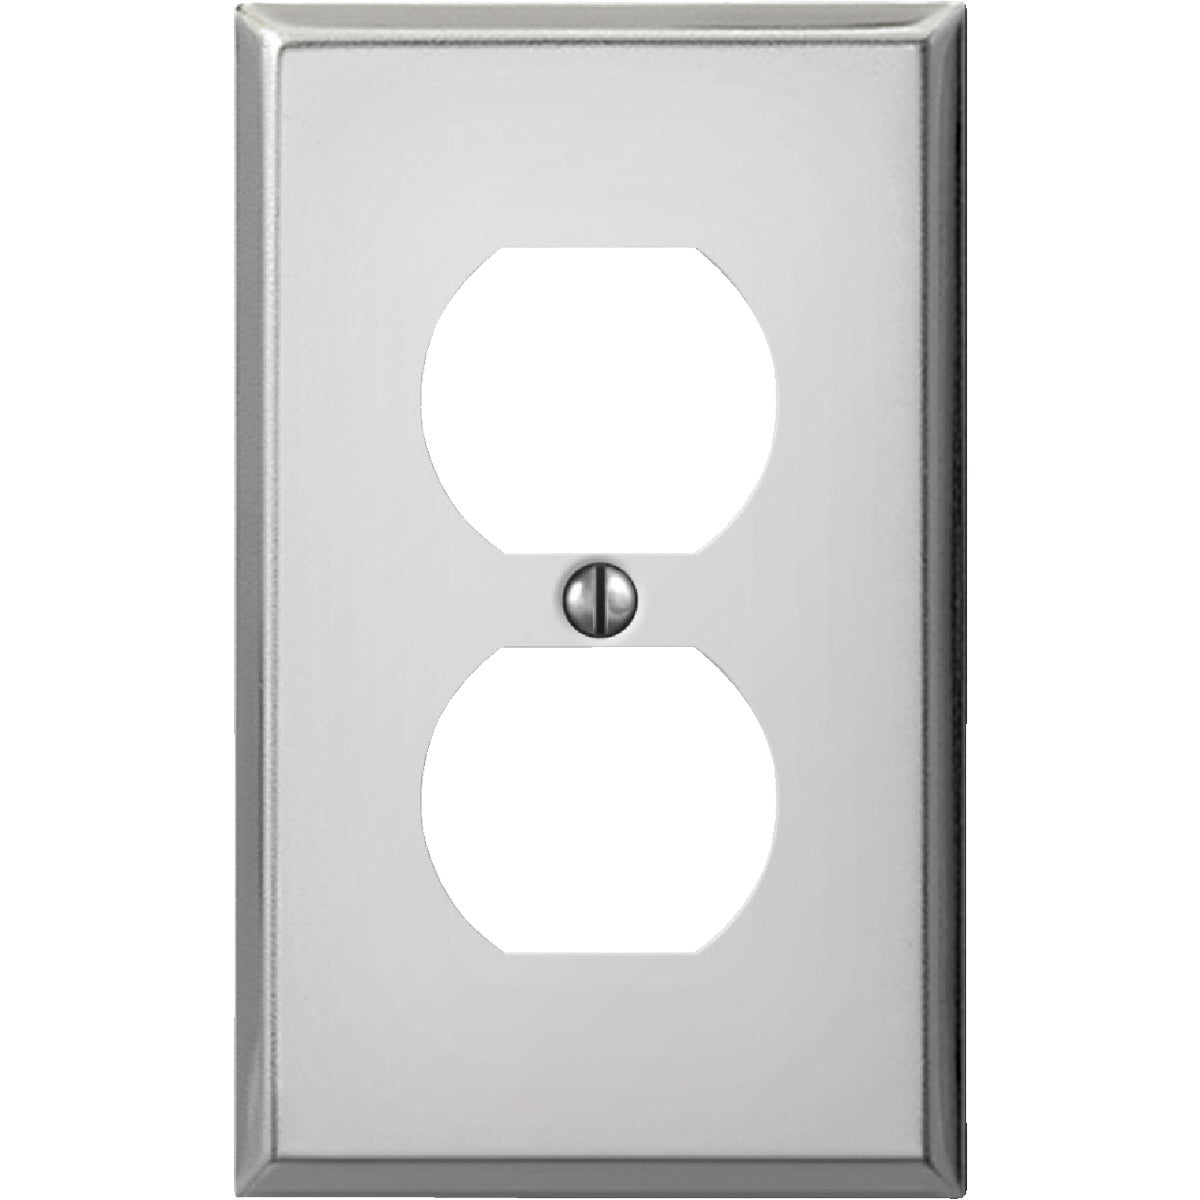 CHR OUTLET WALL PLATE - 8CS108 by Jackson Deerfield Mf